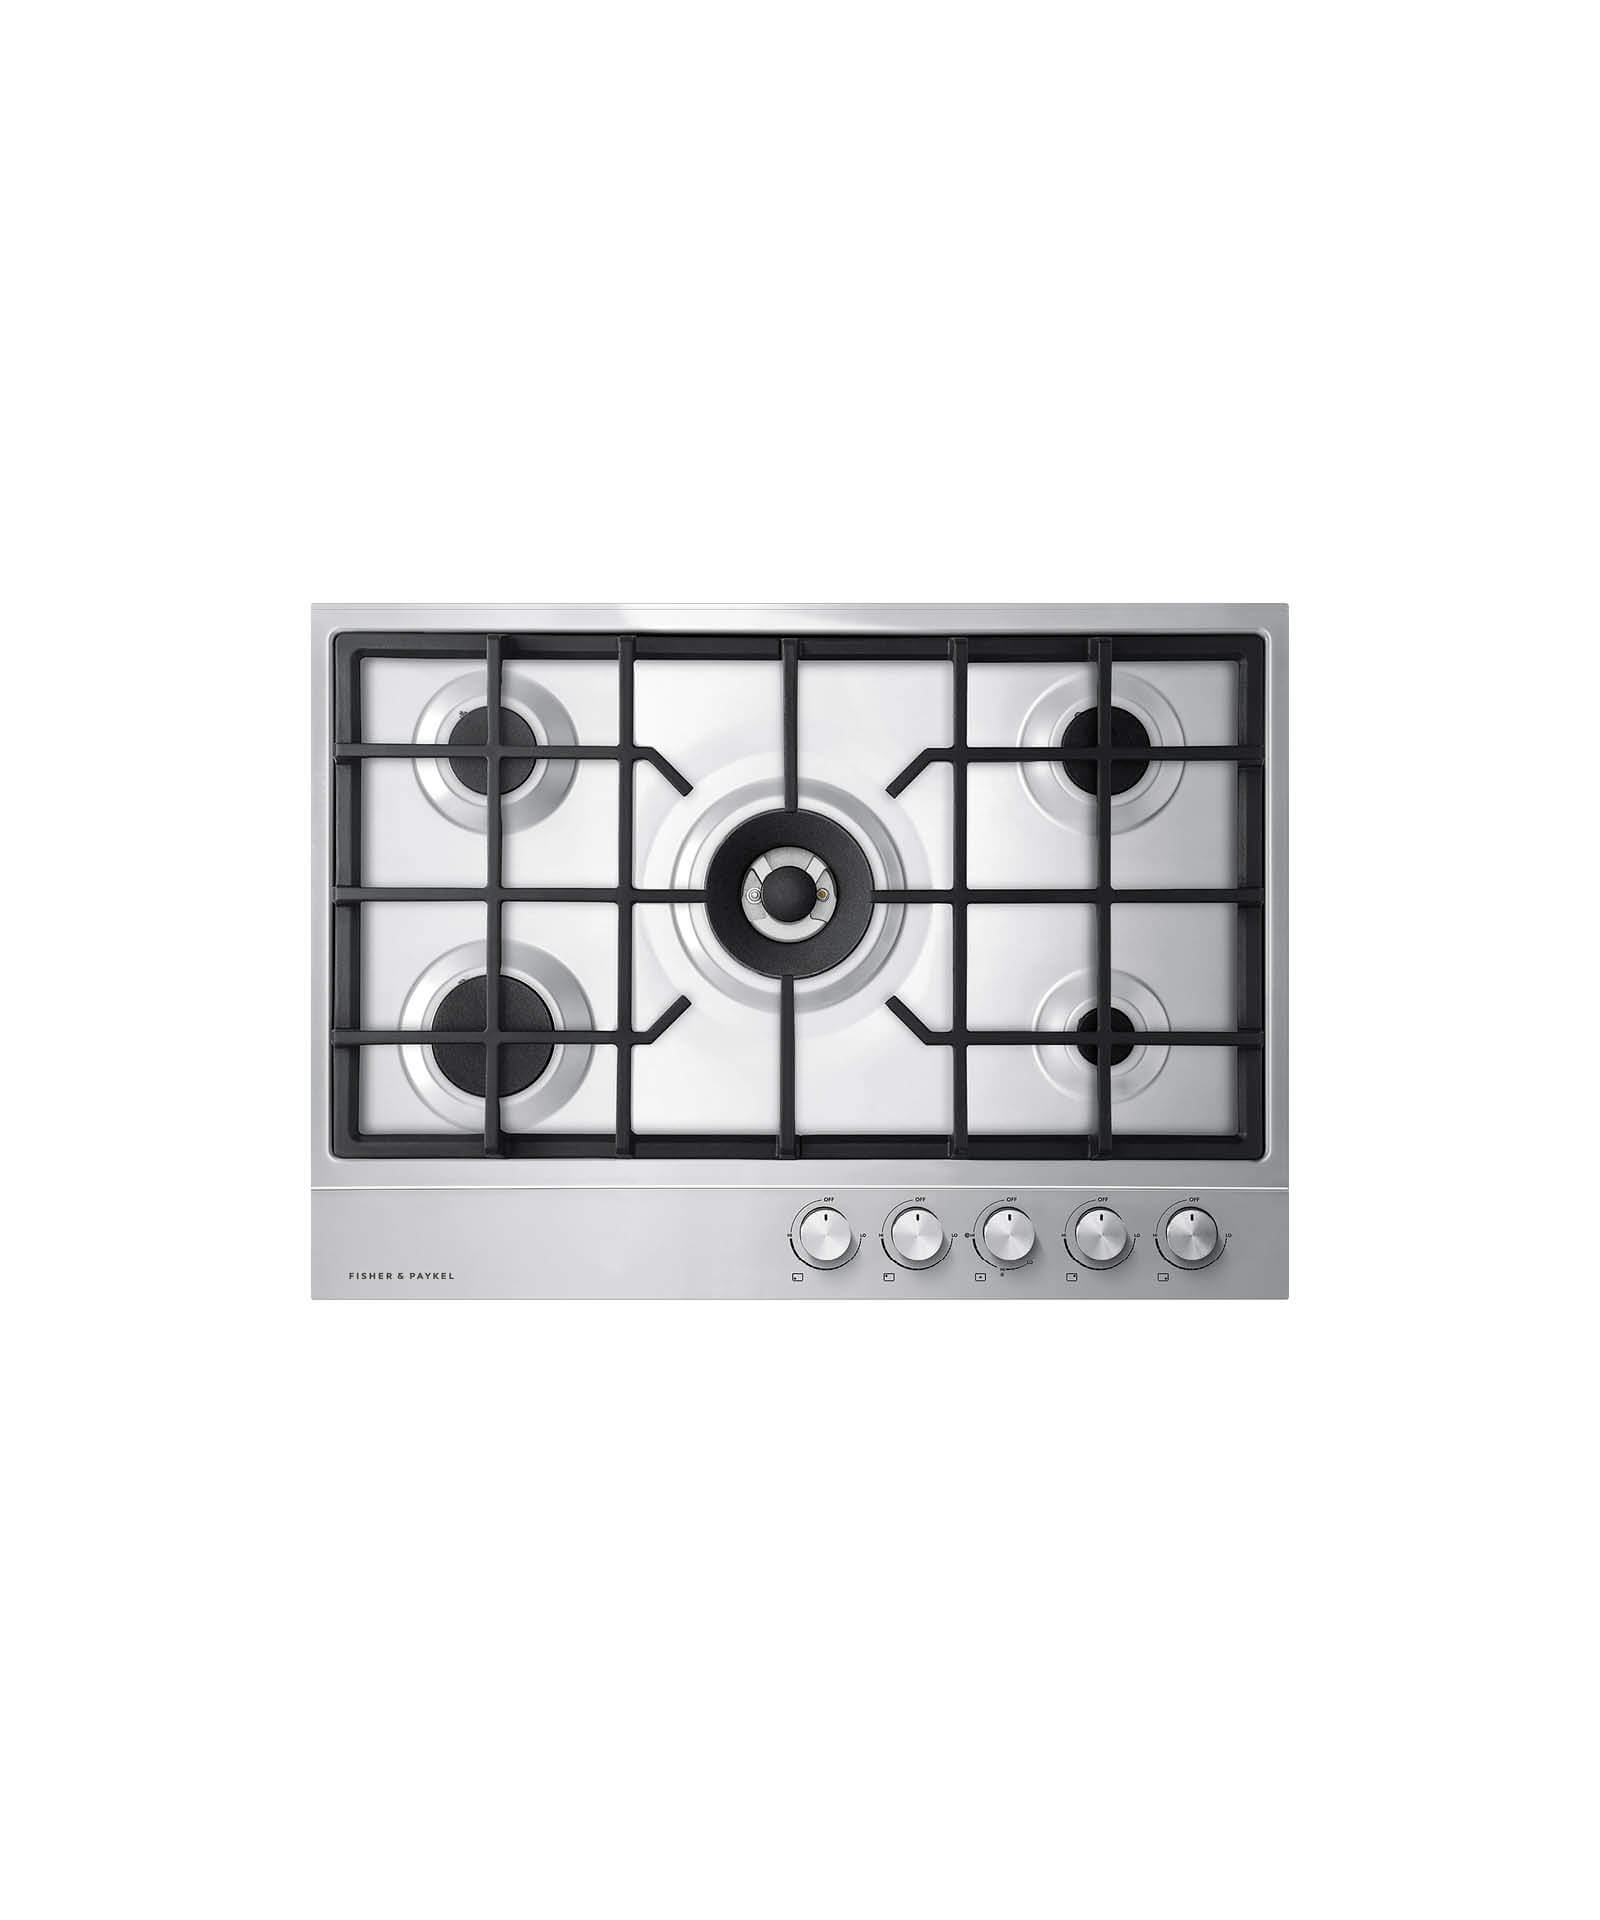 "Fisher and Paykel Gas on Steel Cooktop, 30"" 5 Burner (LPG)"